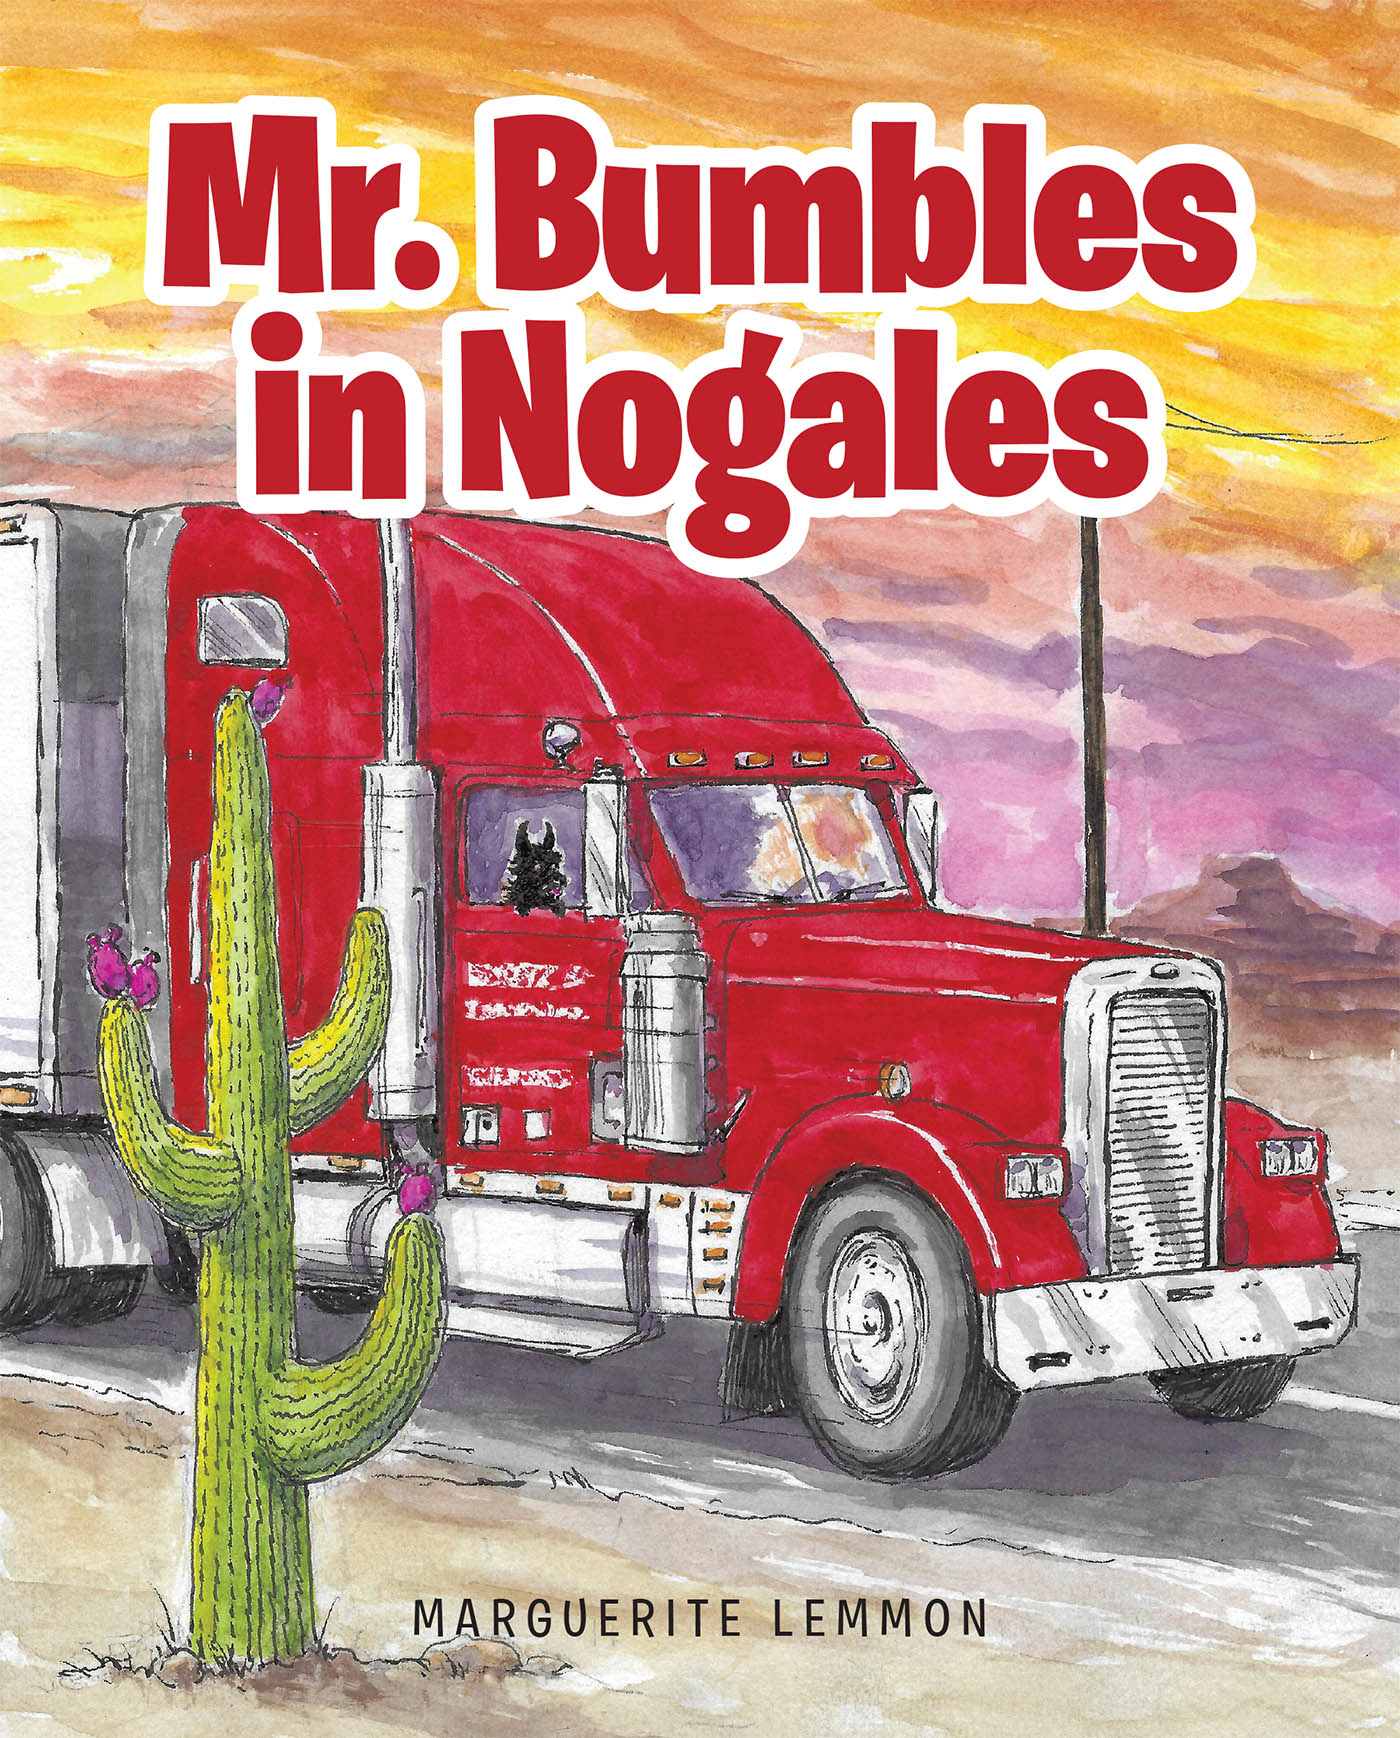 Marguerite Lemmon's New Book 'Mr. Bumbles in Nogales' Follows the Unexpected Misadventures of a Scottish Terrier in Arizona